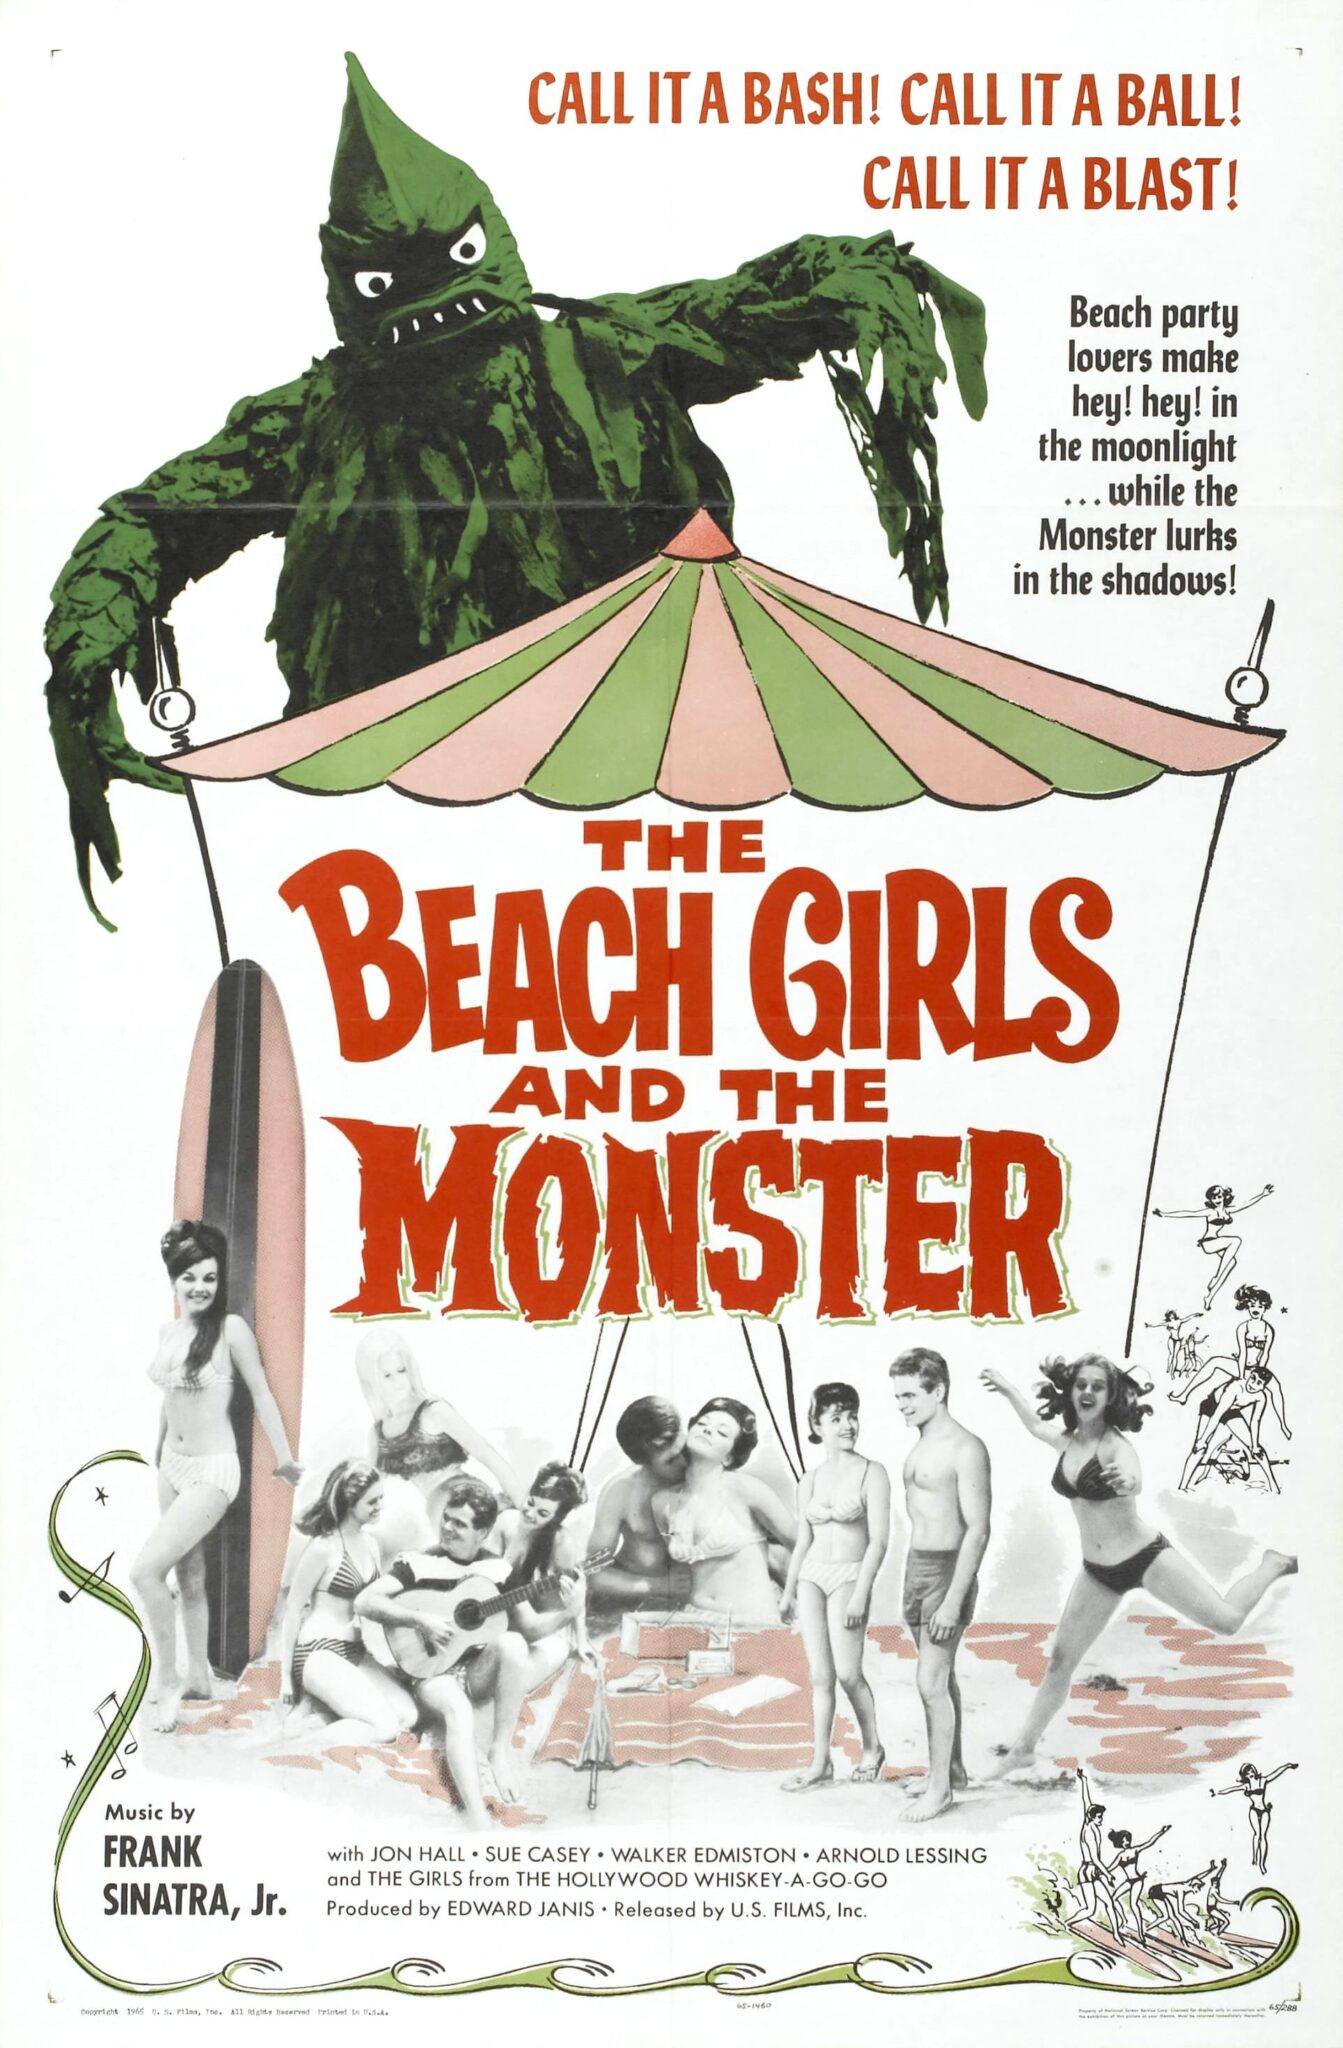 [Awfully Good] Host Your Very Own Trashy Beach Party at Home with THE BEACH GIRLS AND THE MONSTER